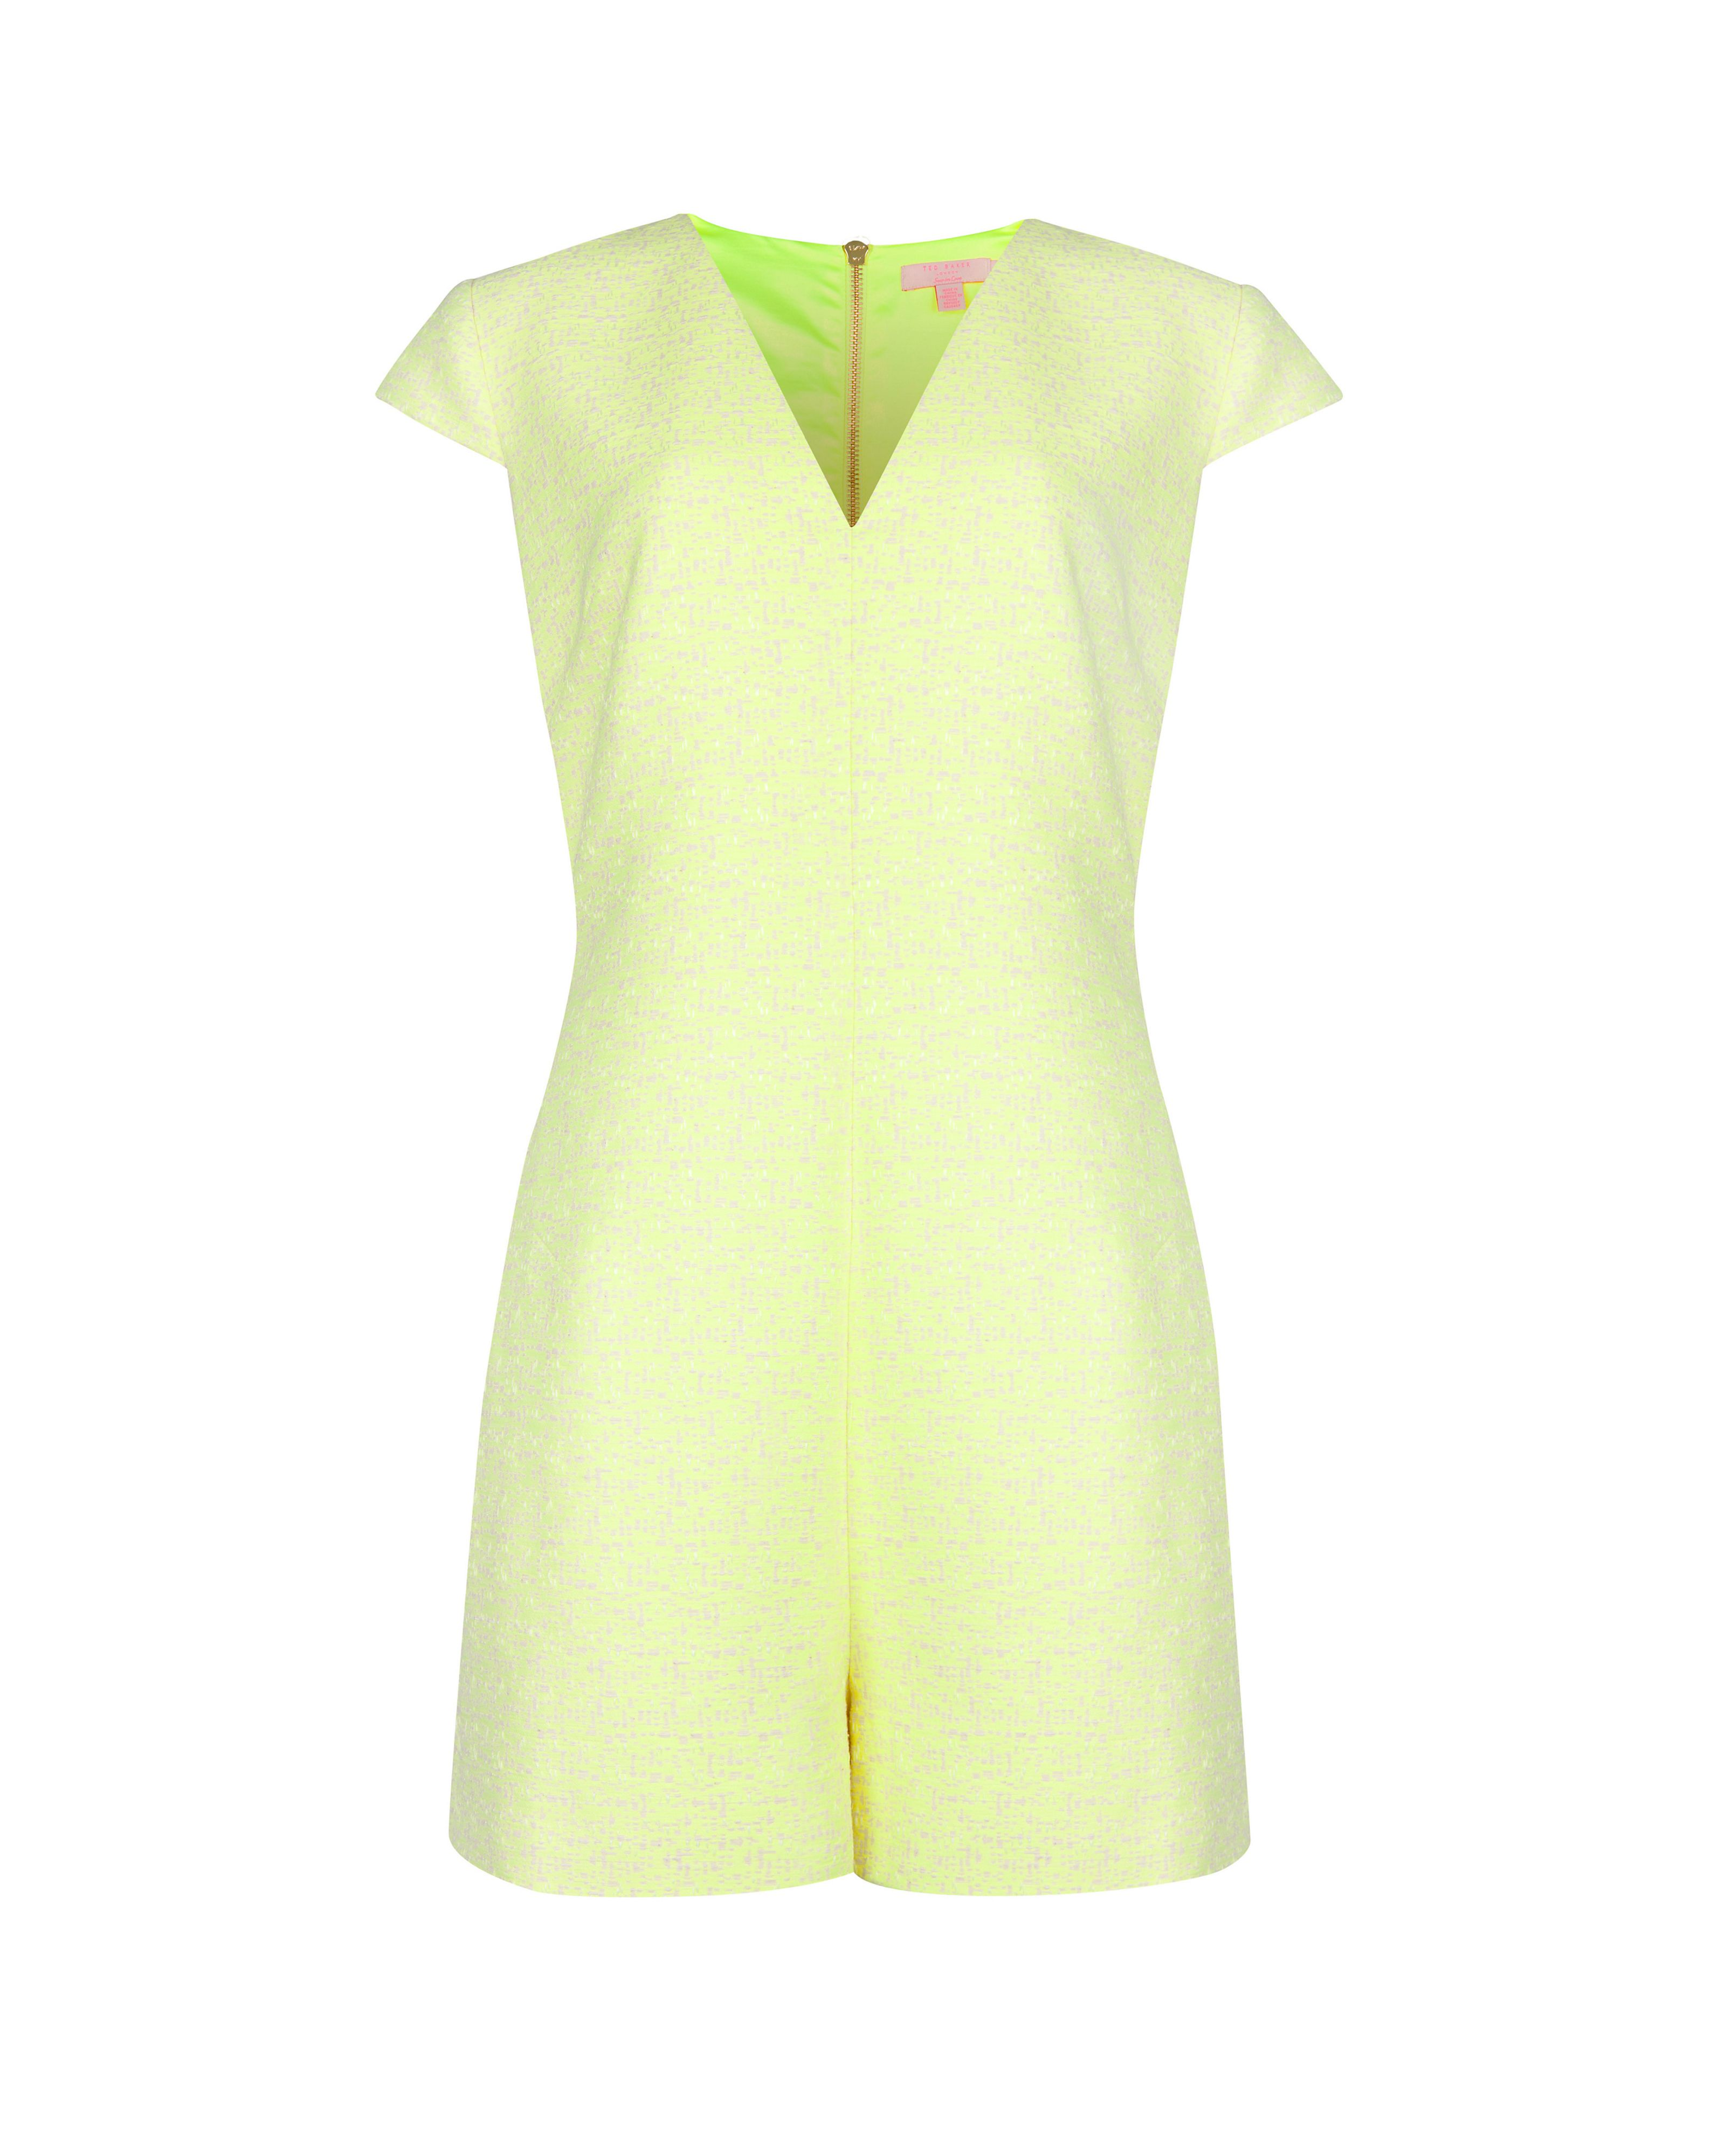 Gwenife textured structured playsuit